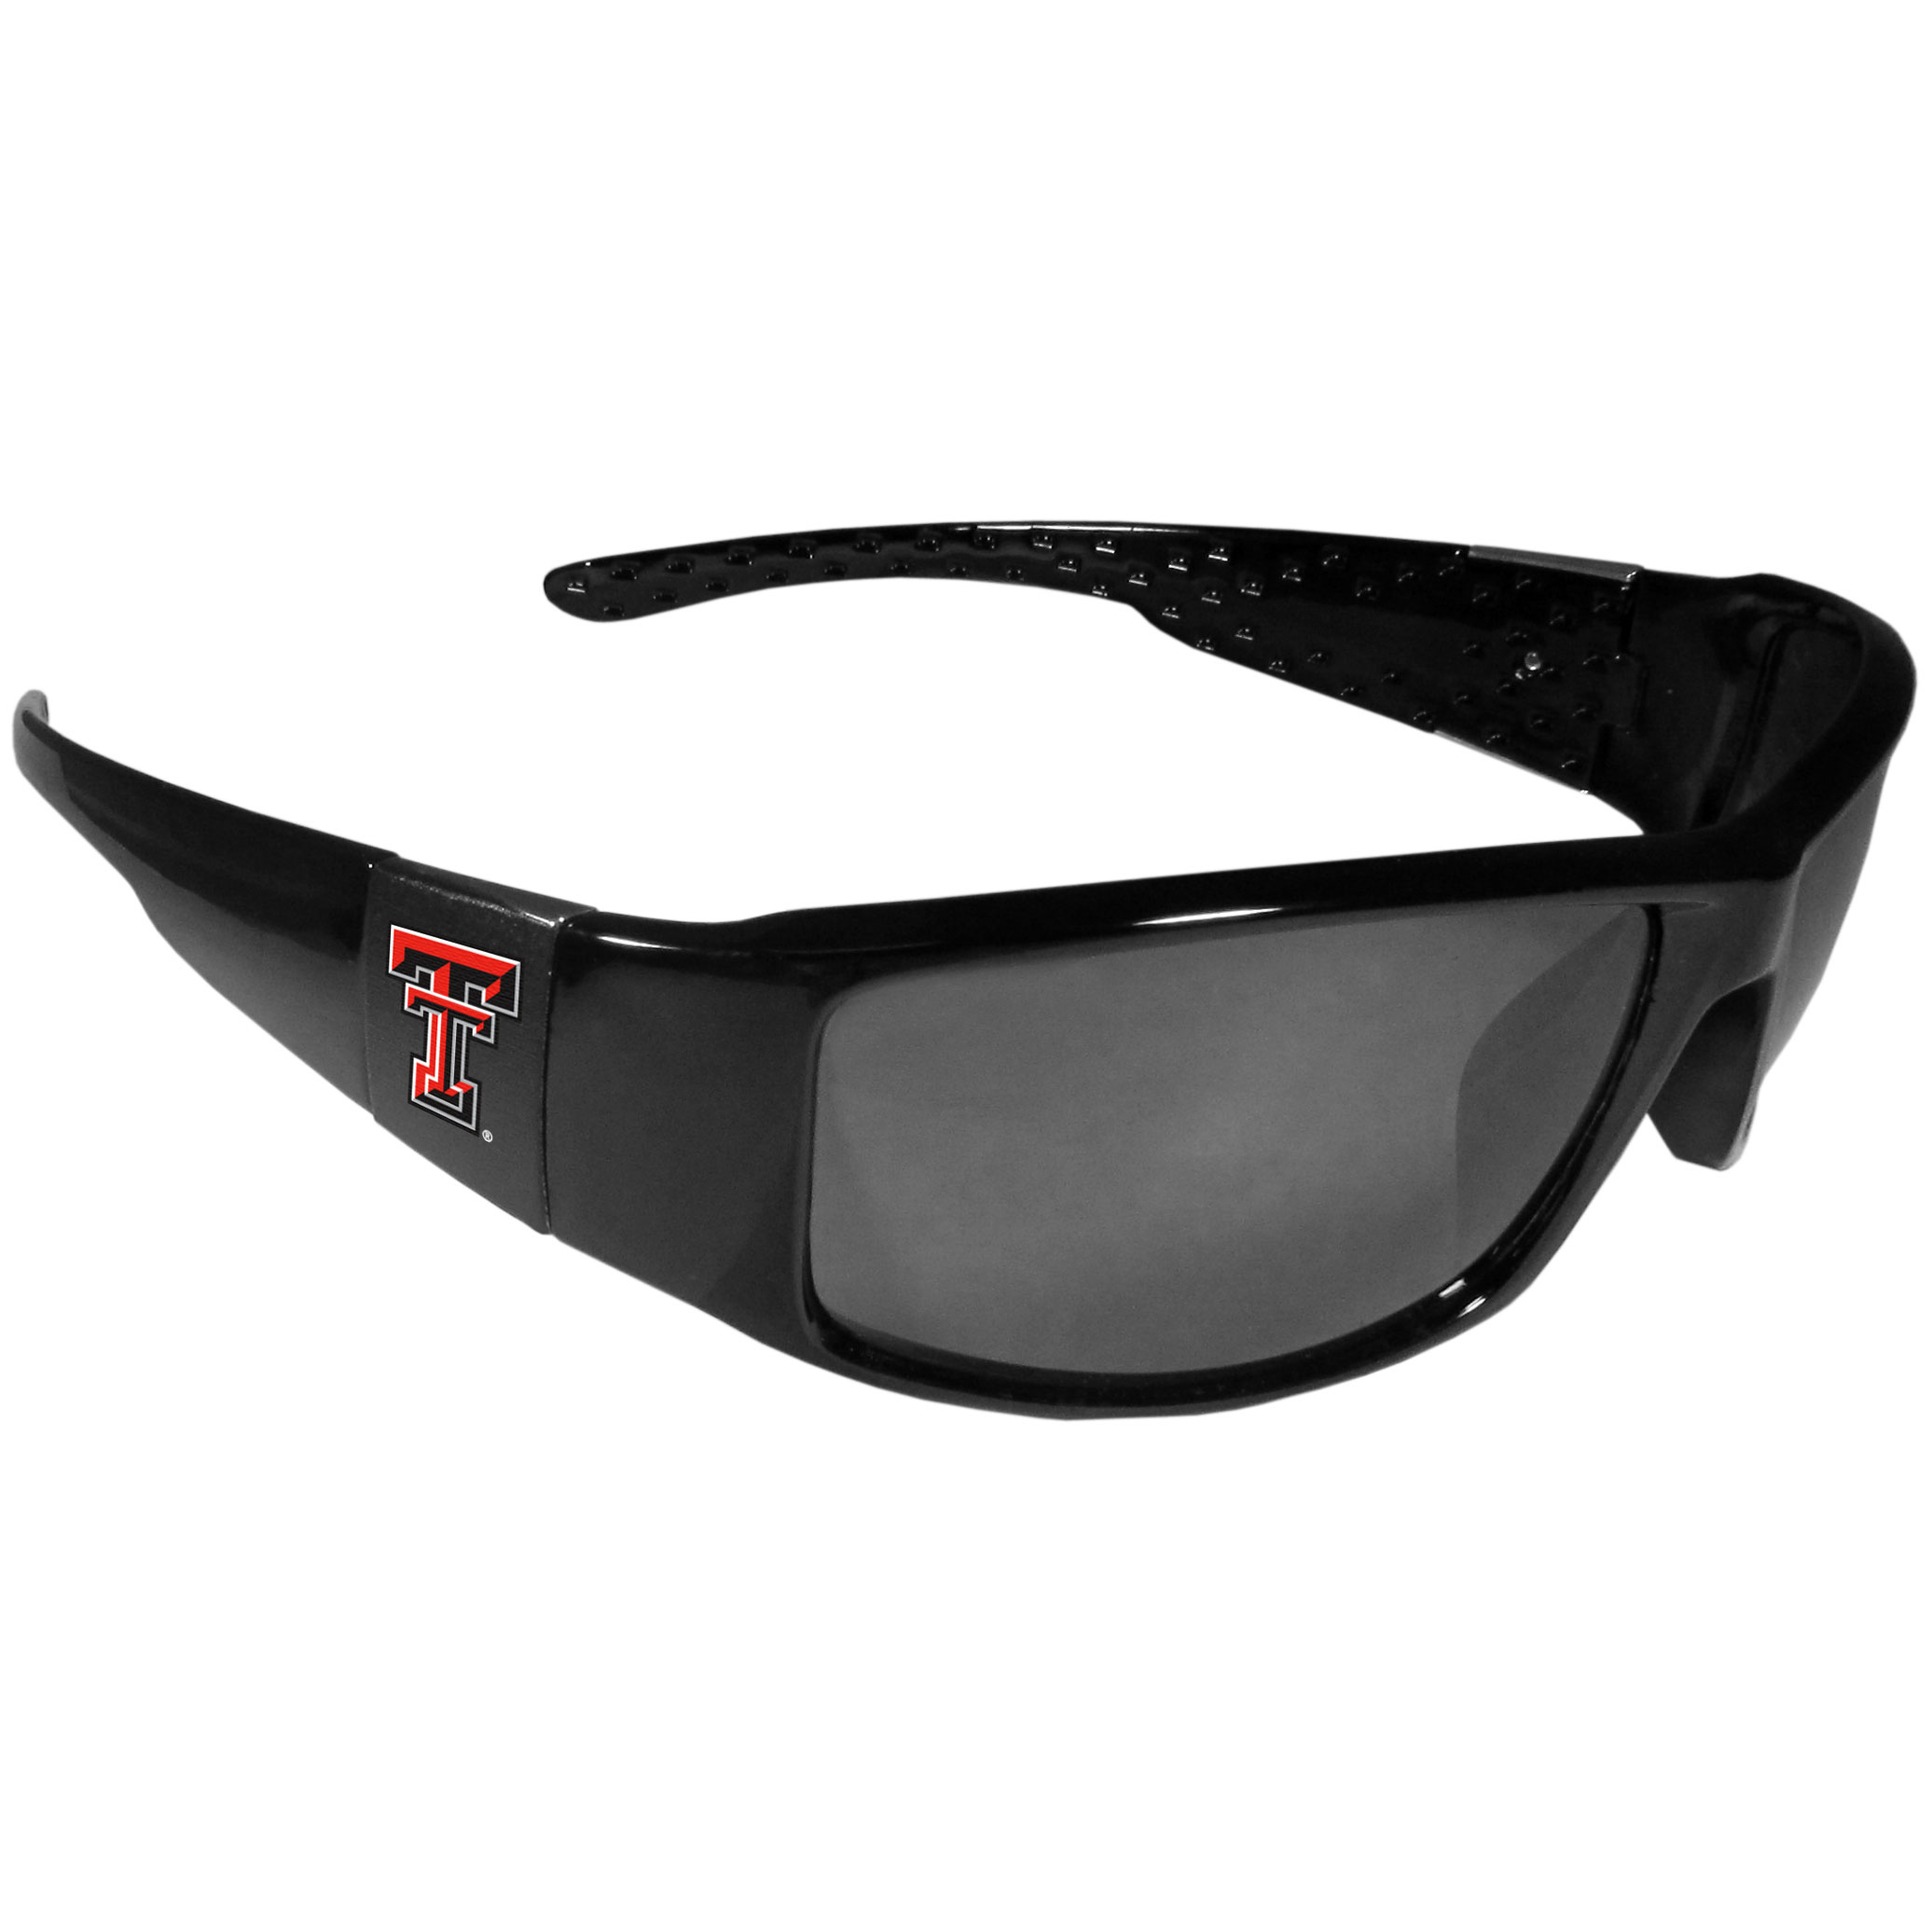 Texas Tech Raiders Black Wrap Sunglasses - These designer inspired frames have a sleek look in all black with  Texas Tech Raiders shields on each arm with a printed logo. The shades are perfect for any outdoor activity like; golfing, driving, hiking, fishing or cheering on the team at a tailgating event or at a home game day BBQ with a lens rating of 100% UVA/UVB for maximum UV protection. The high-quality frames are as durable as they are fashionable and with their classic look they are the perfect fan accessory that can be worn everyday for every occasion.